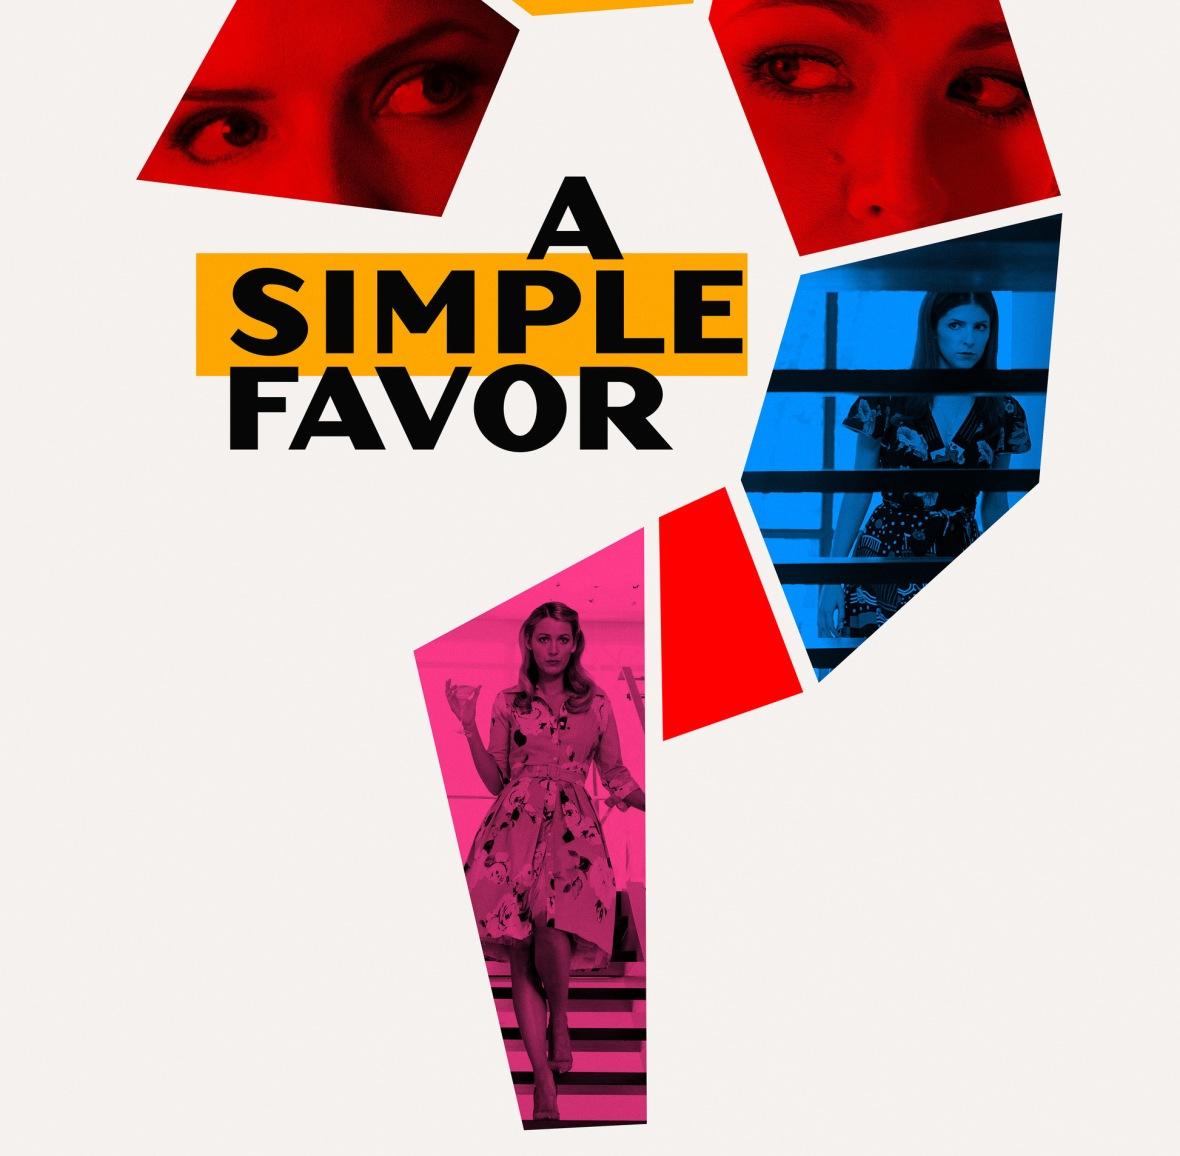 simple-favor-poster2